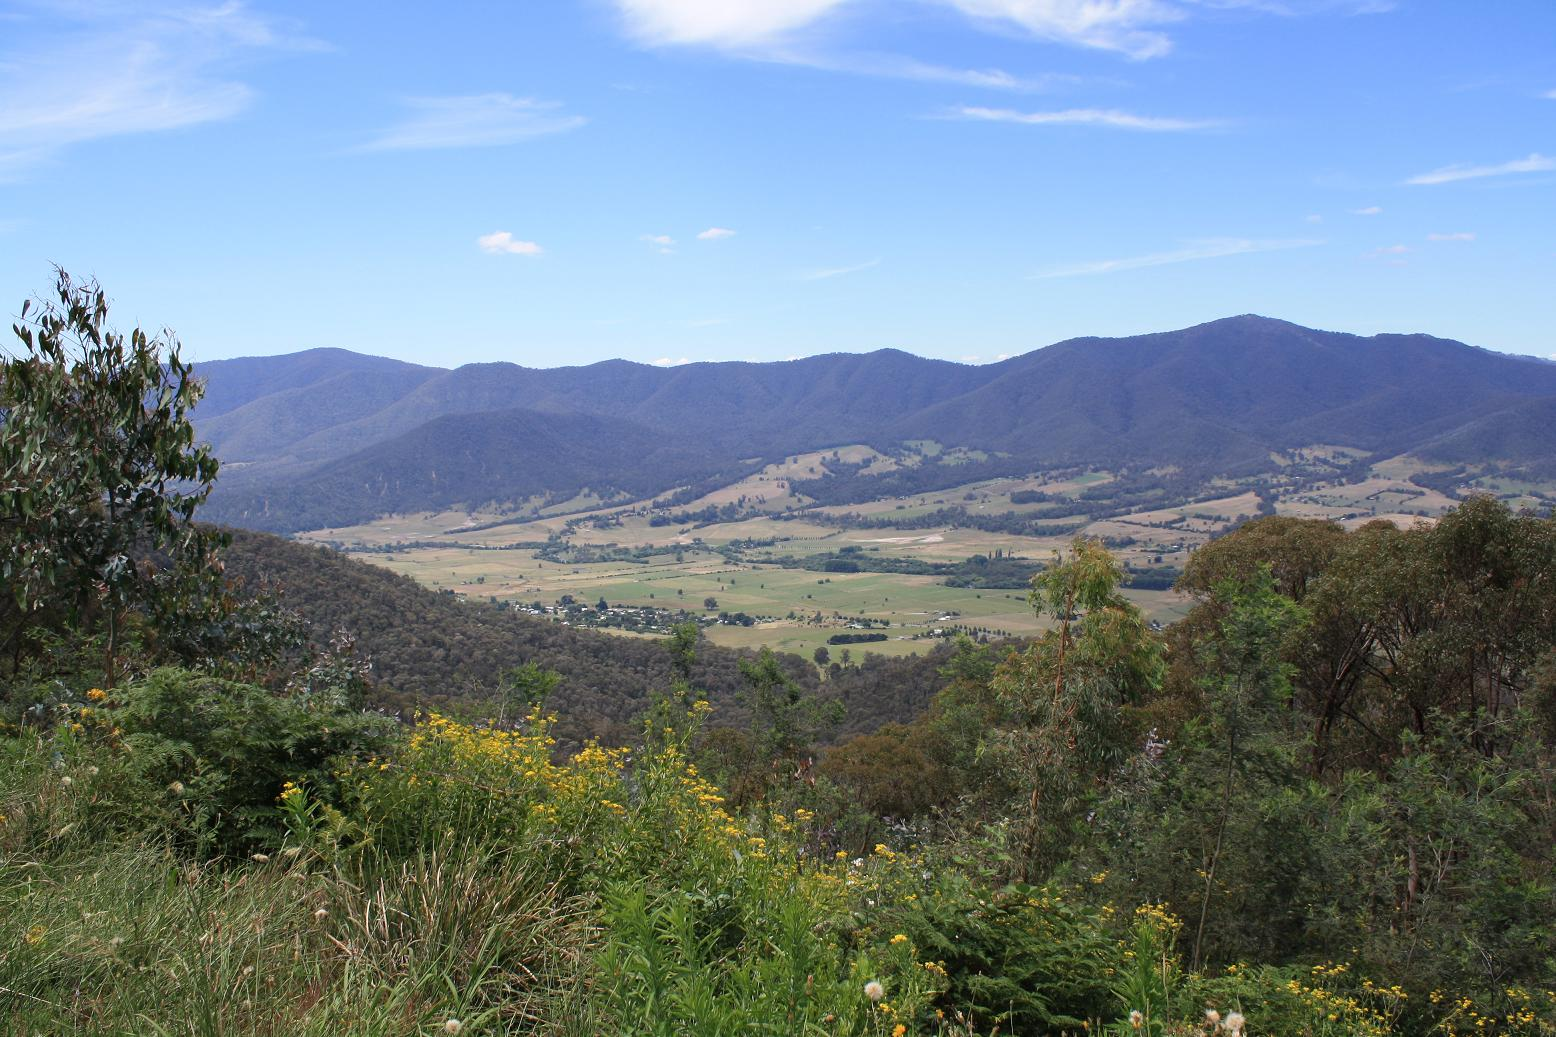 View from the Tawonga Gap